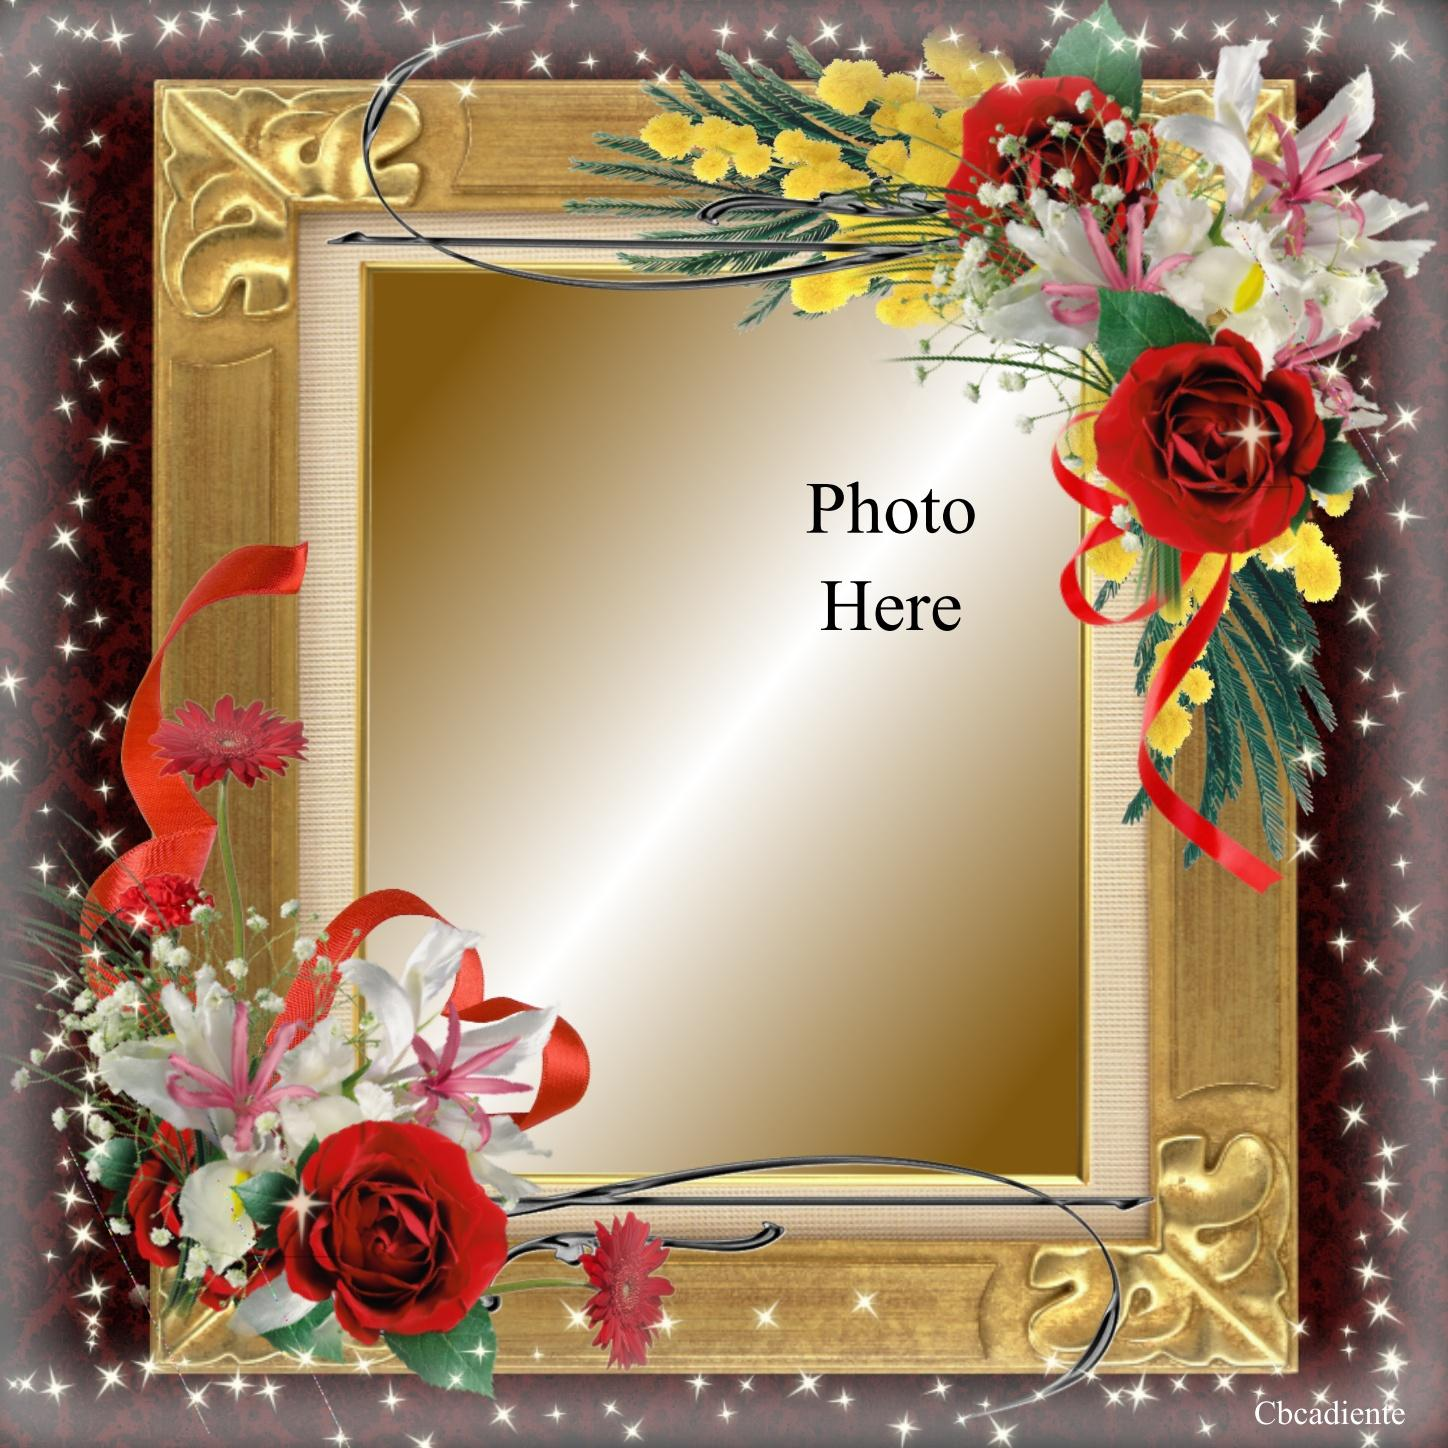 Imikimi Zo - Picture Frames - frame for all #CathyCadiente ...